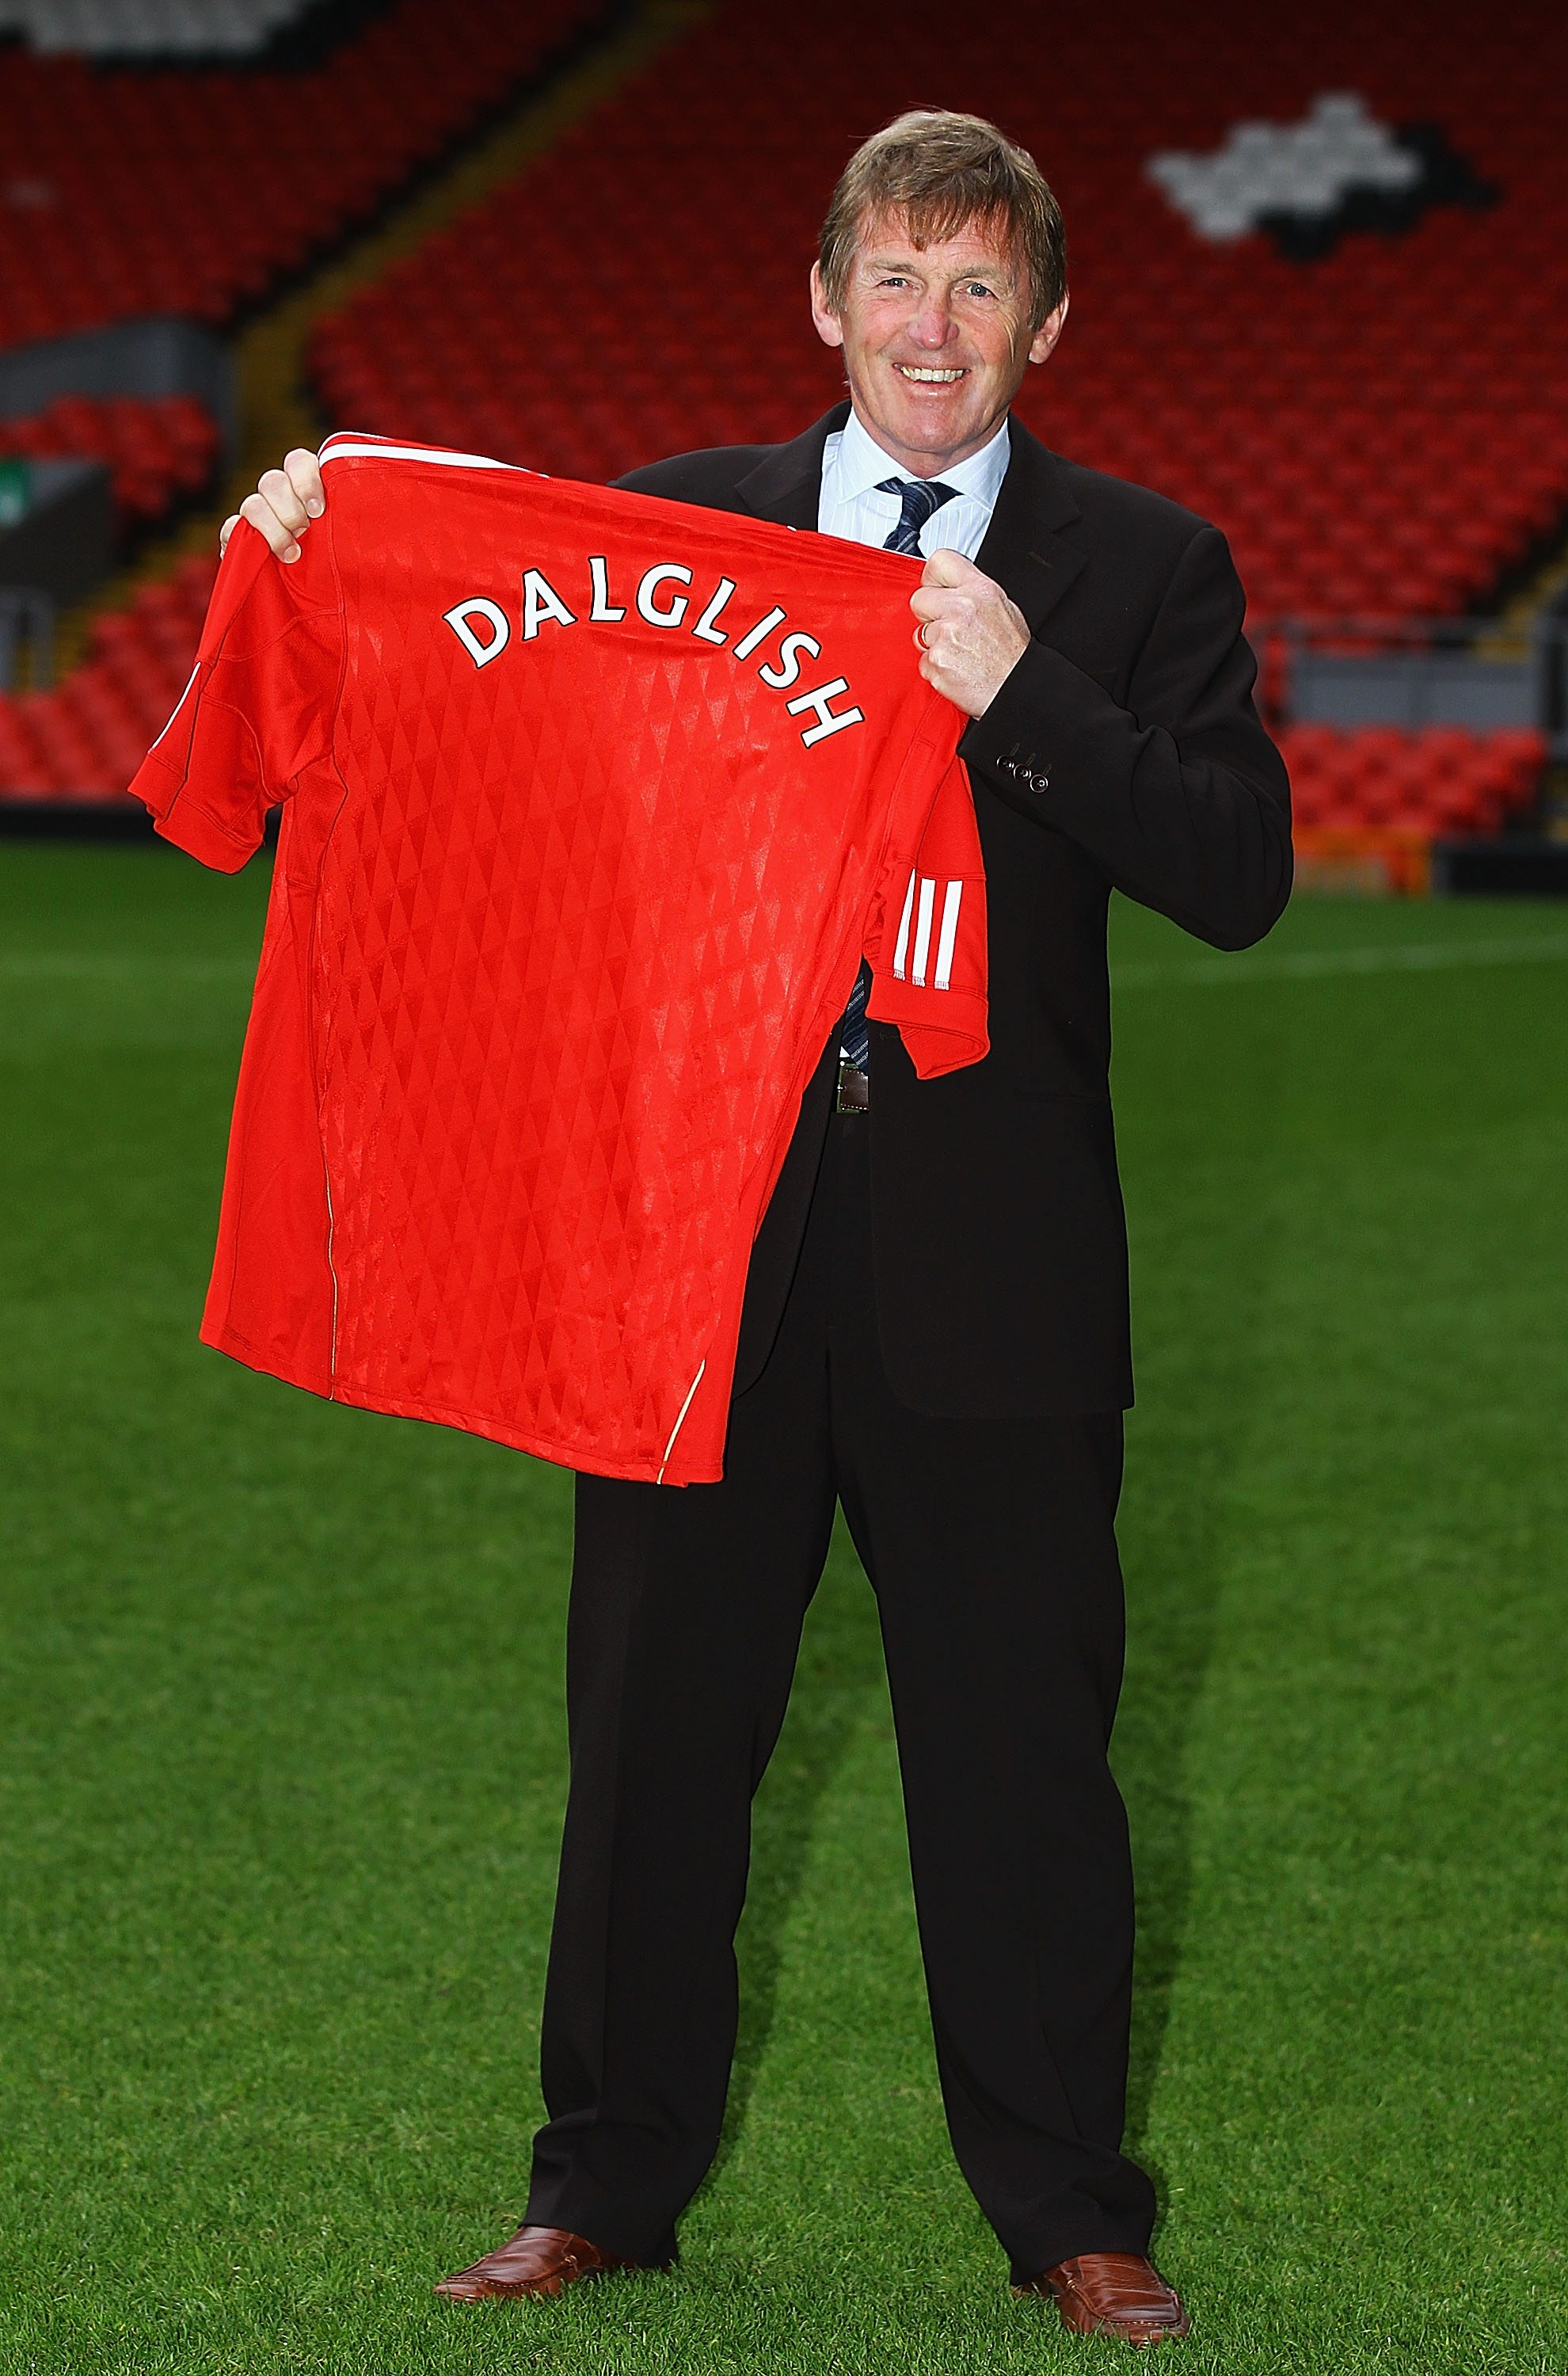 LIVERPOOL, ENGLAND - JANUARY 10:  Kenny Dalglish is formally introduced as the manager of Liverpool FC at Anfield on January 10, 2011 in Liverpool, England.  (Photo by Matthew Lewis/Getty Images)